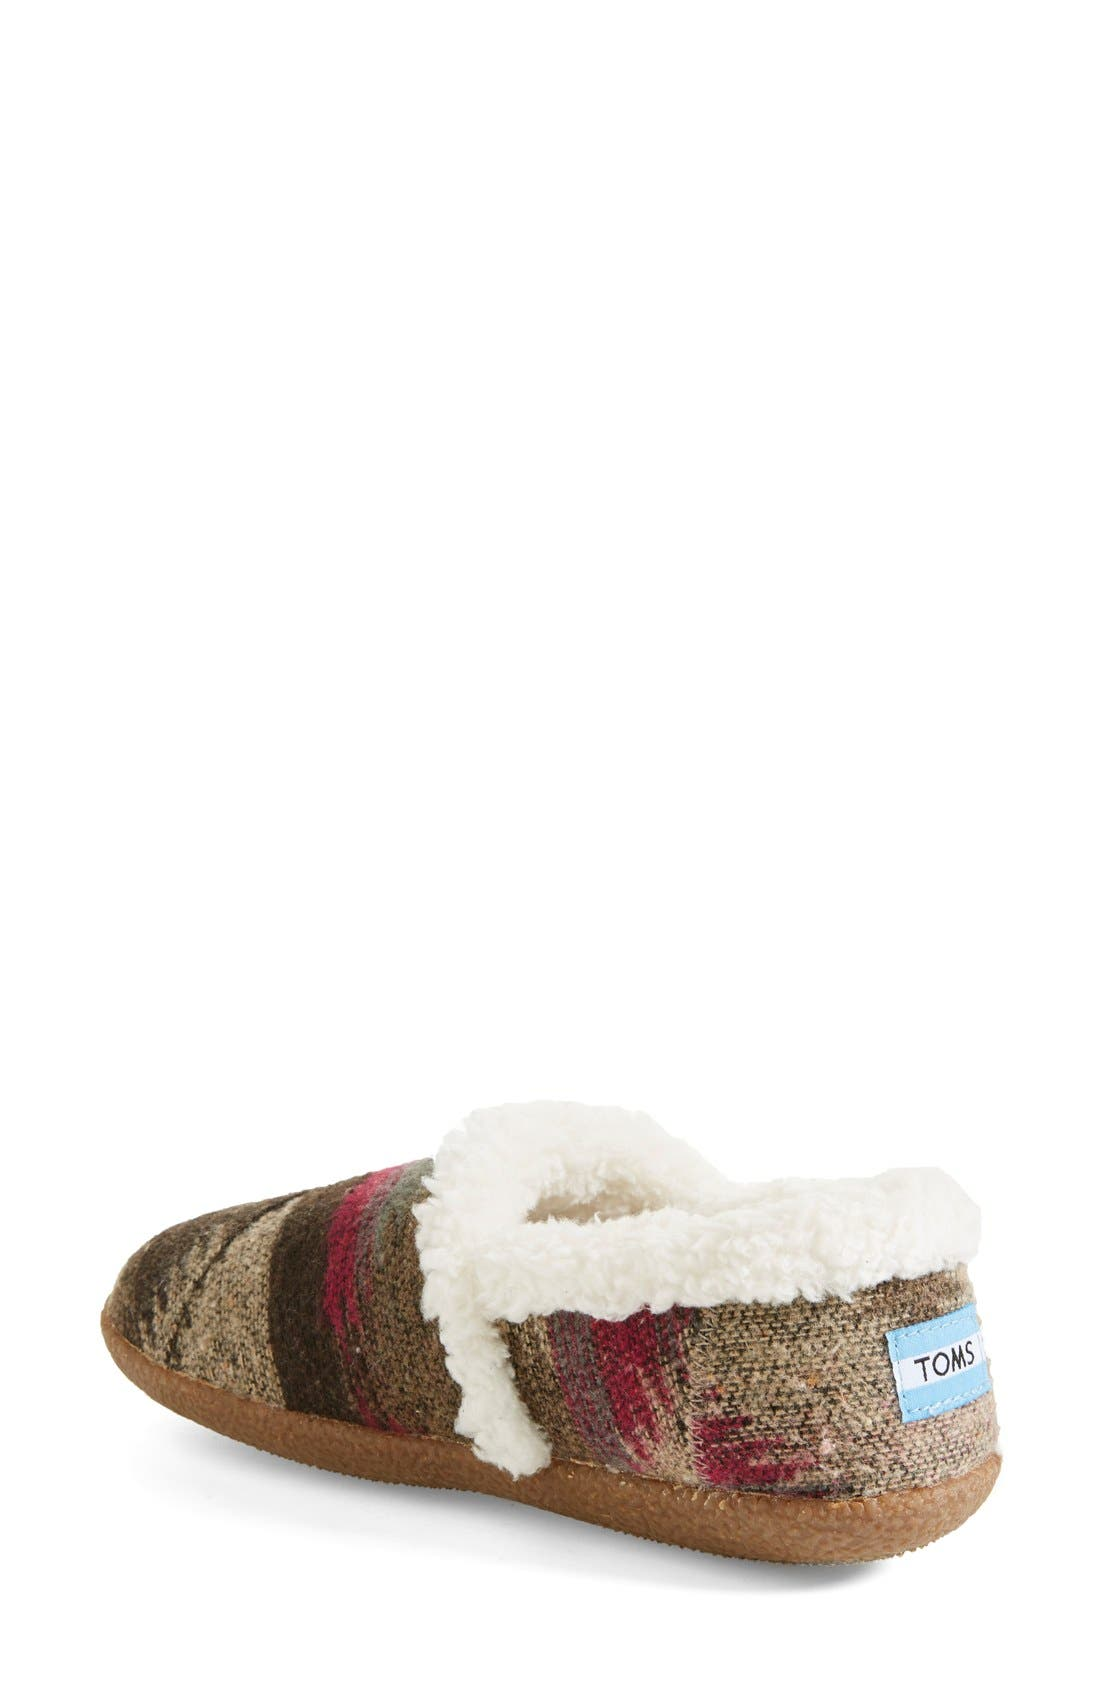 TOMS,                             'Classic - Wool' Slippers,                             Alternate thumbnail 4, color,                             050